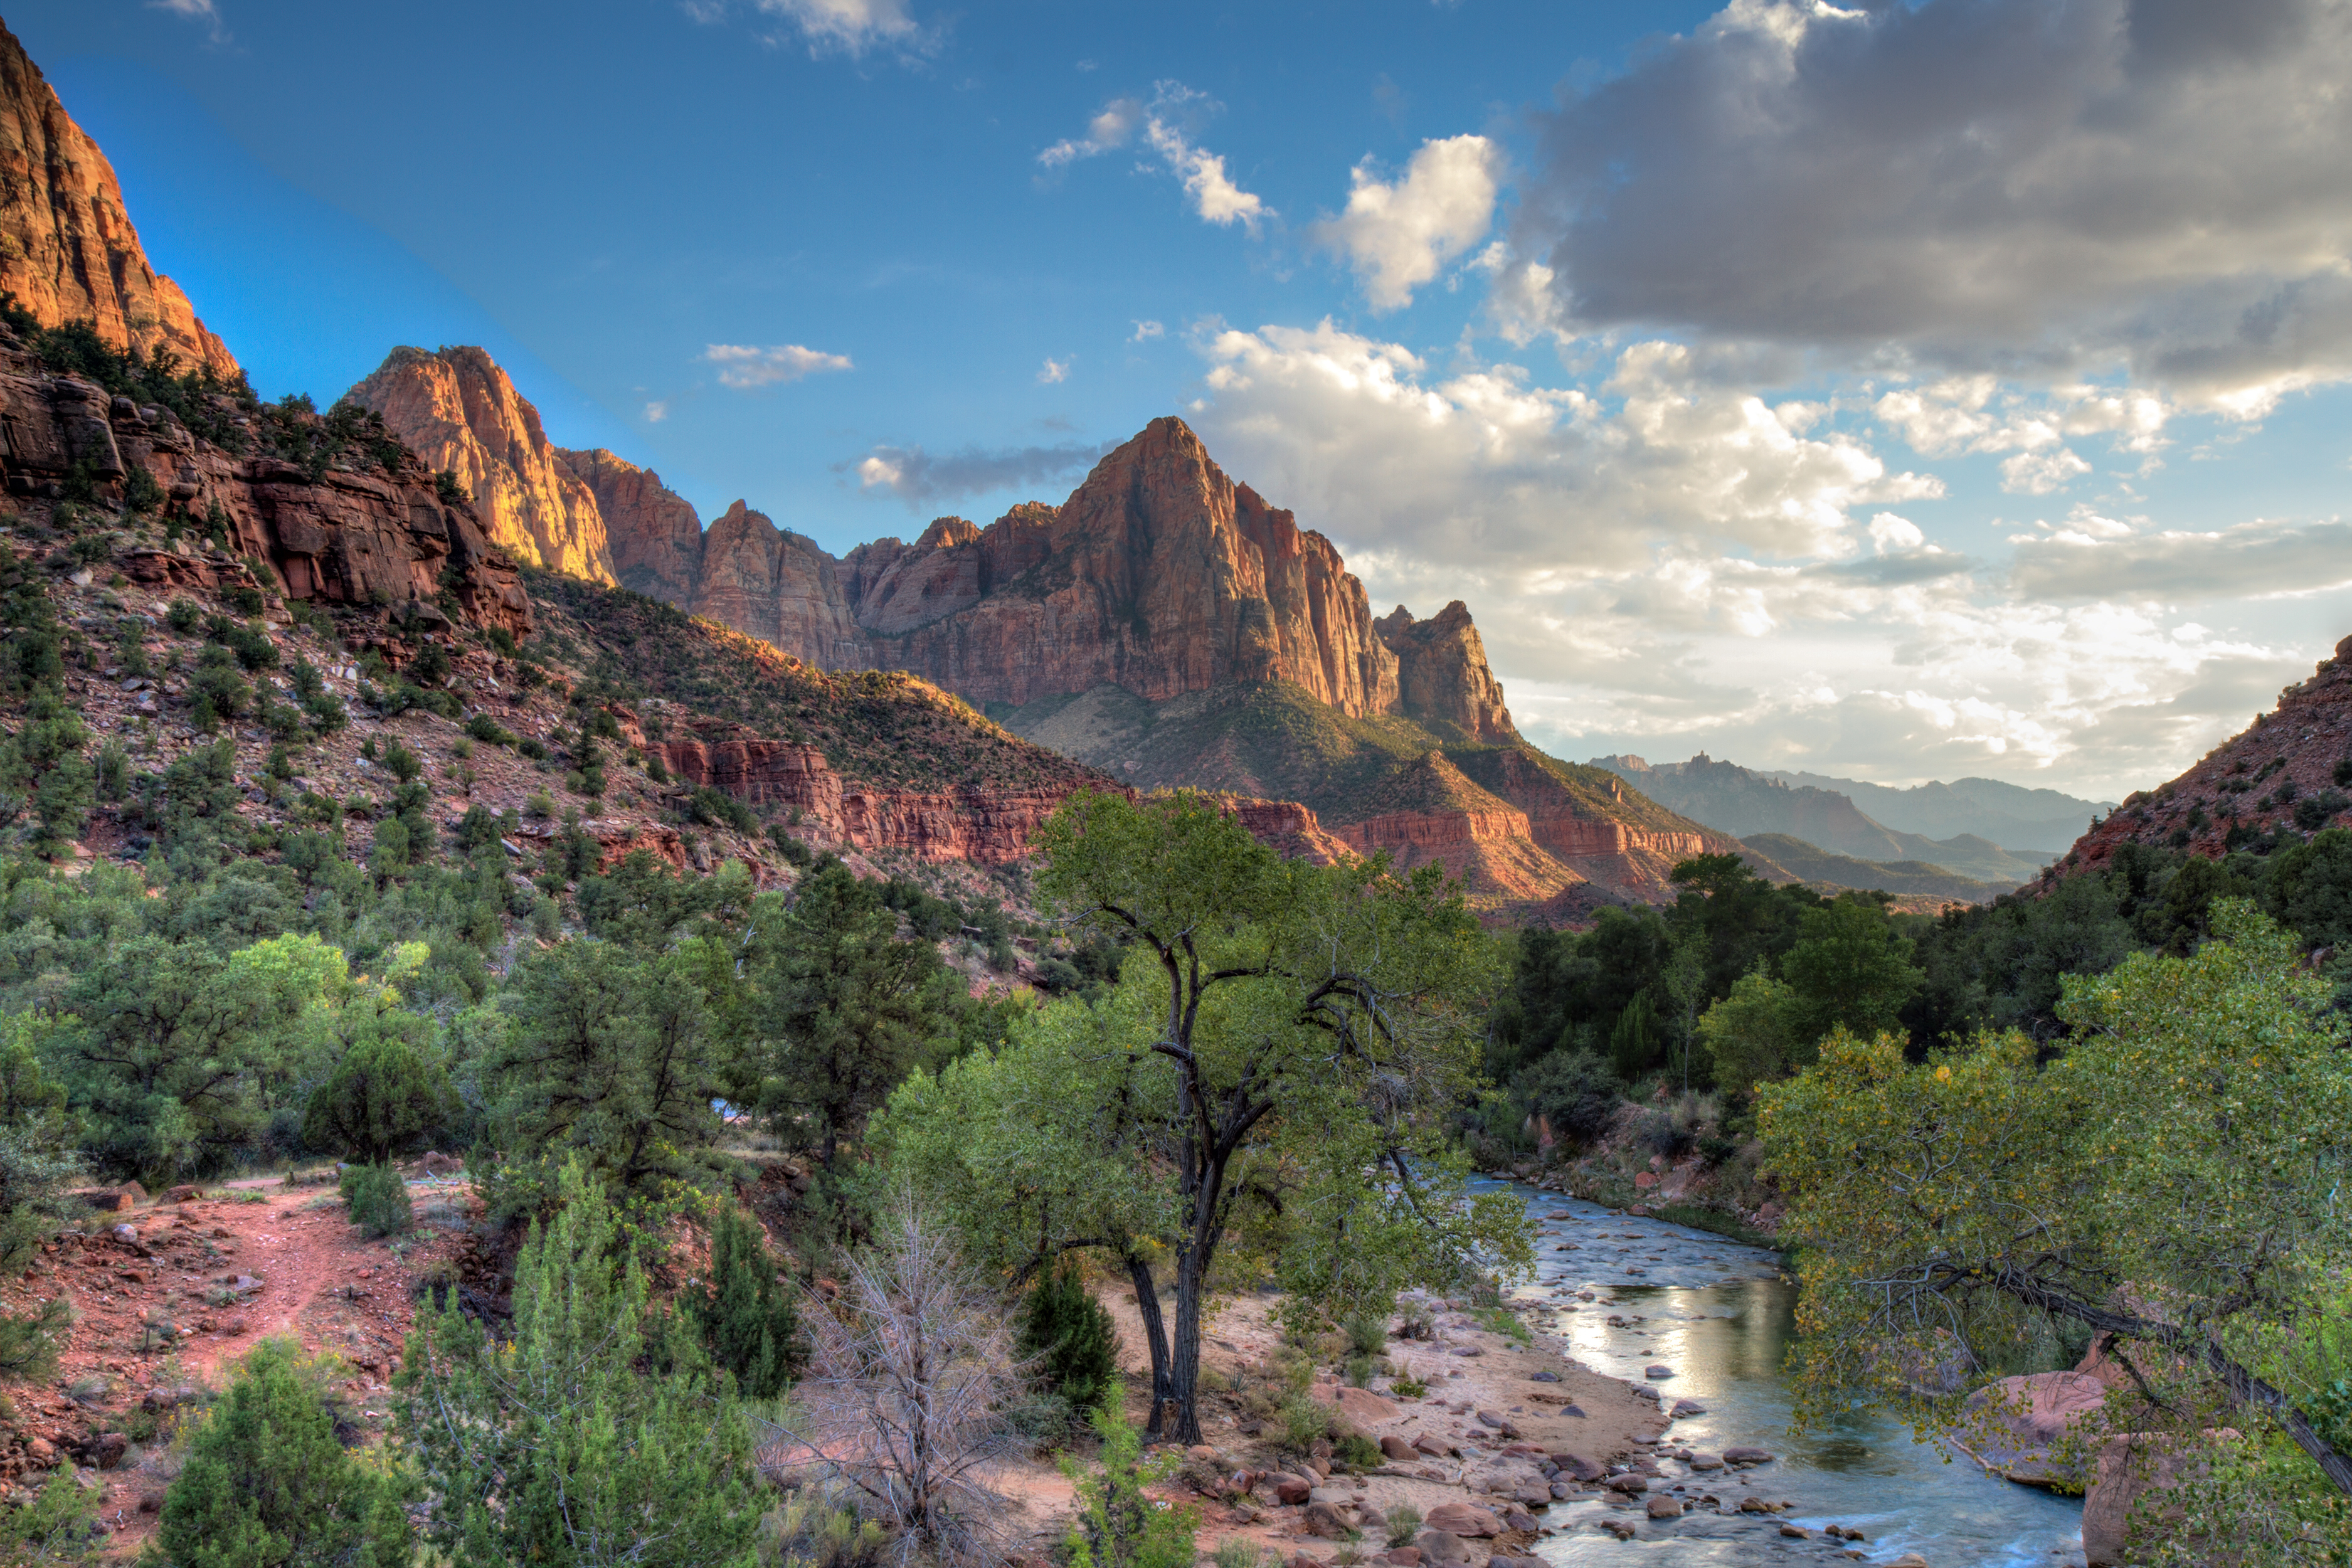 We are located in Utah near Zions national park. This is a picture of the local scenery.